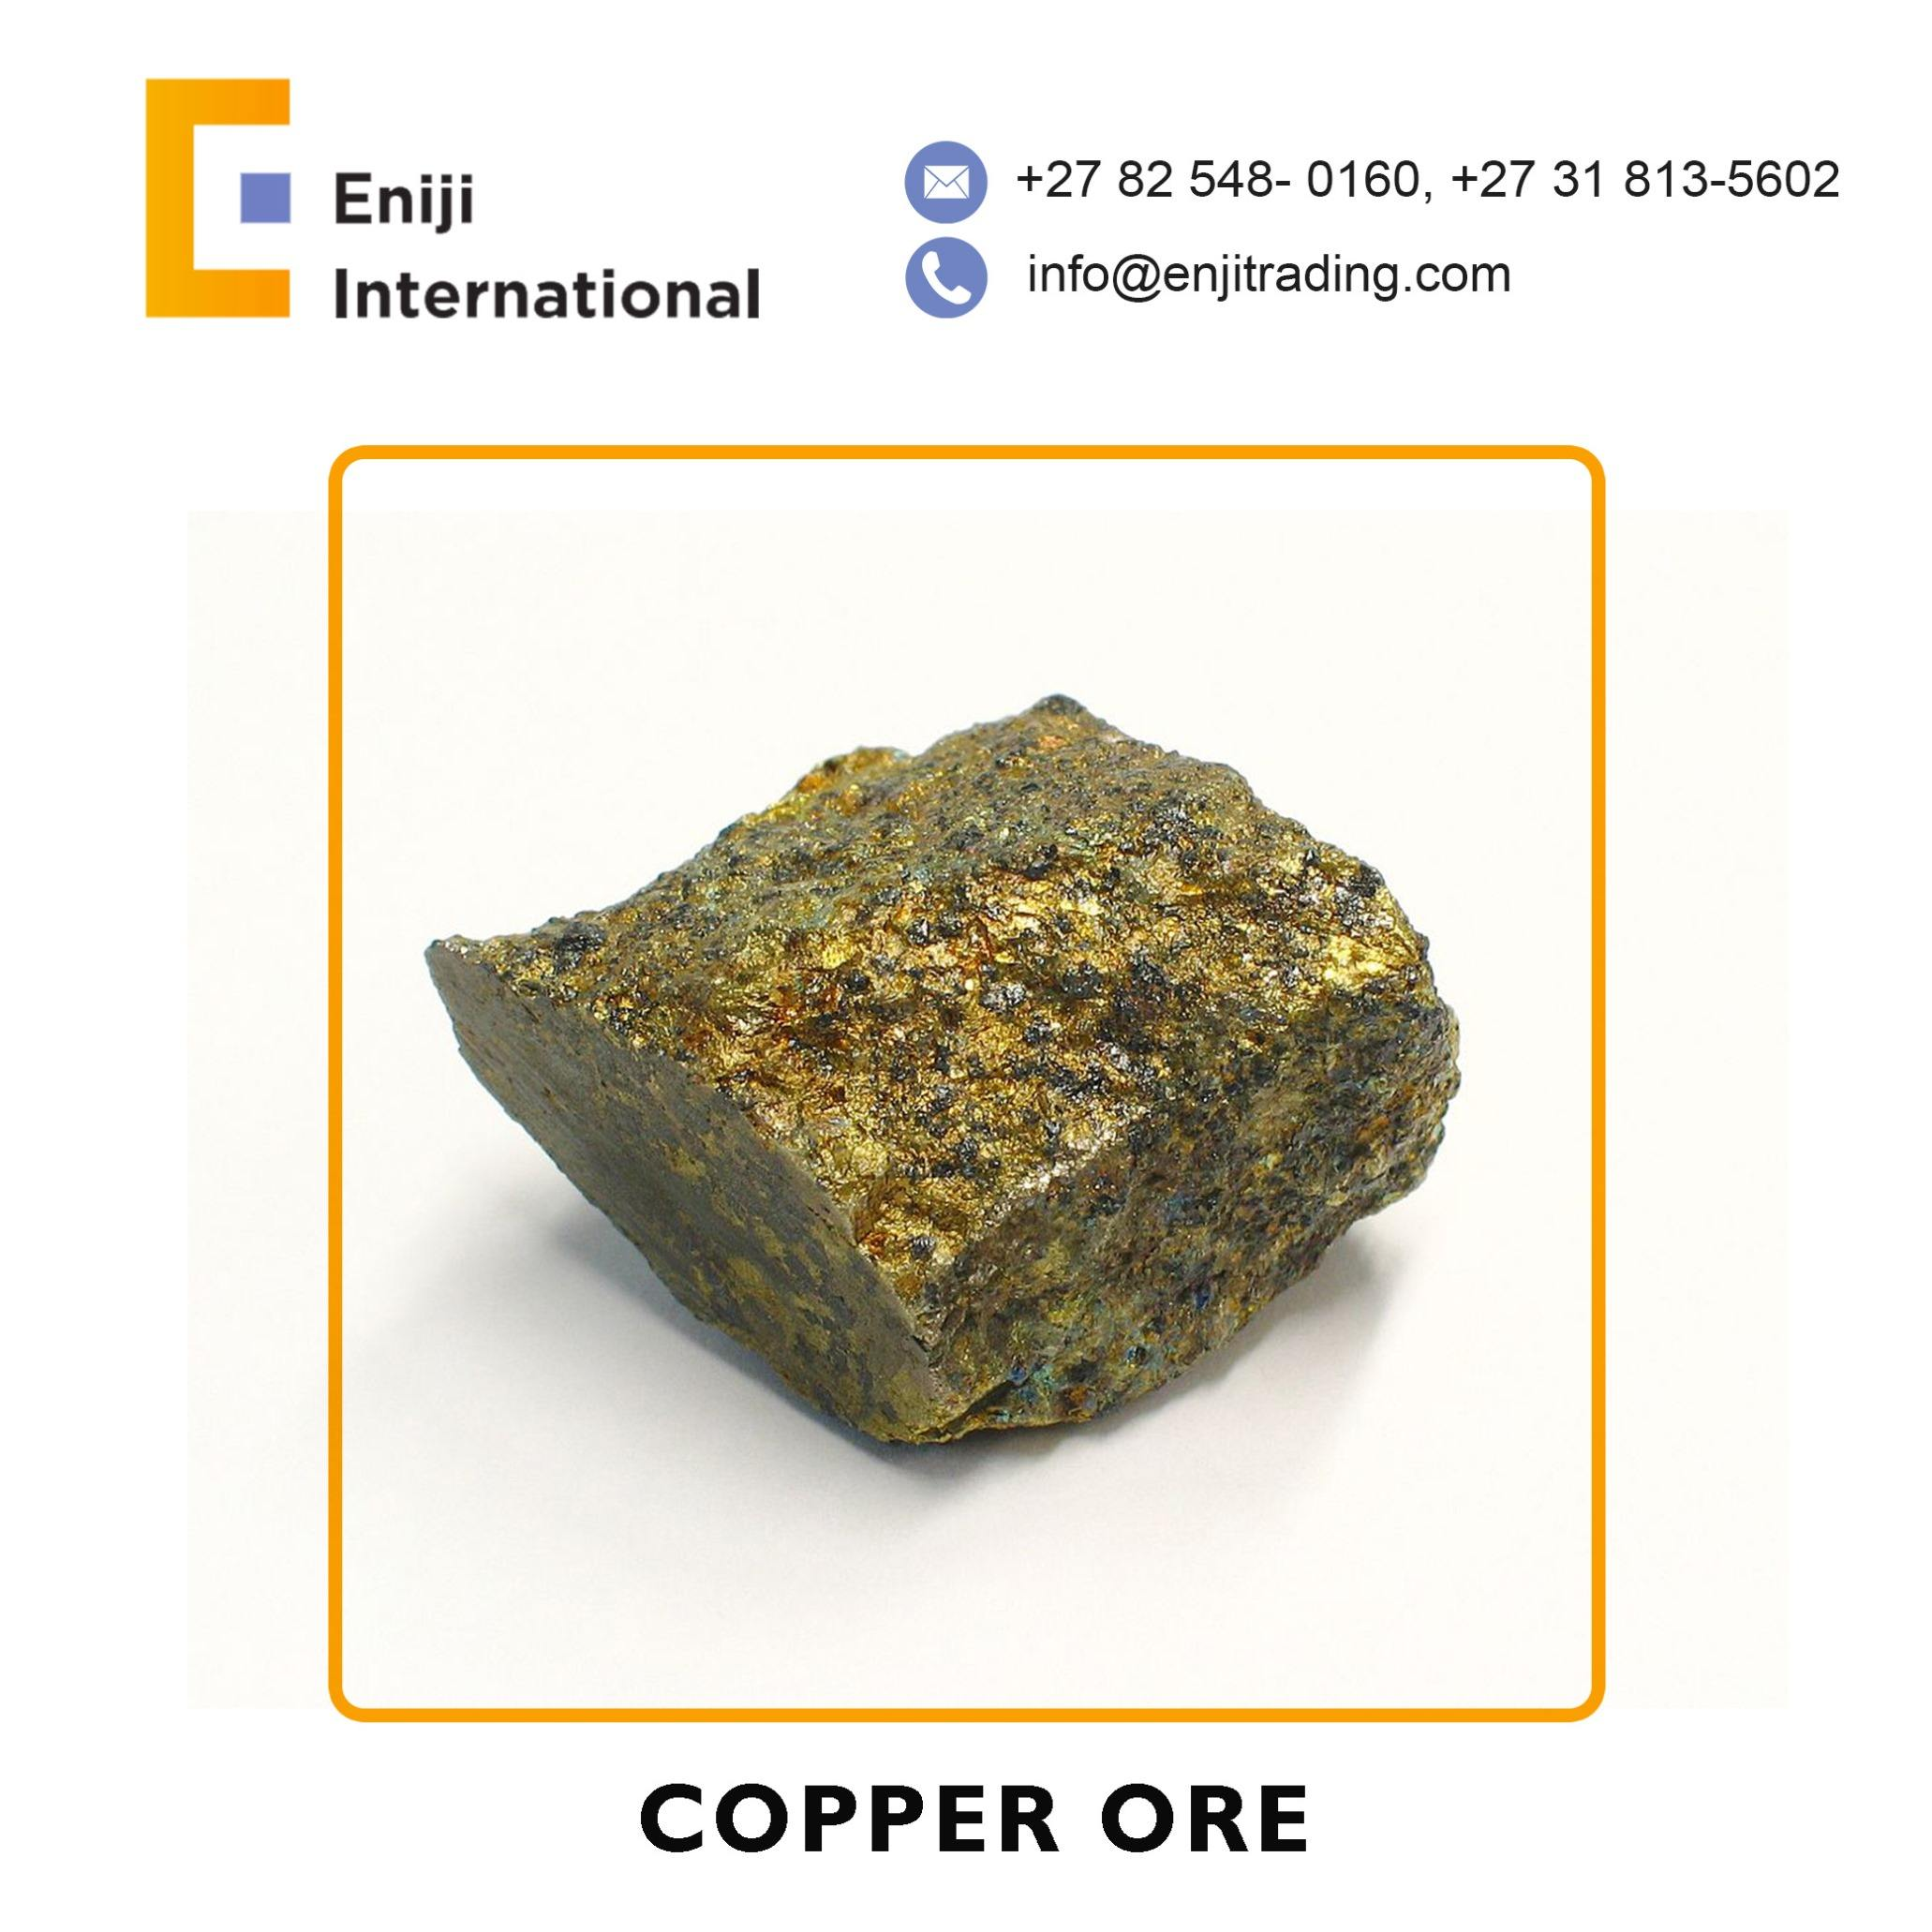 Top Quality Copper Ore From South Africa